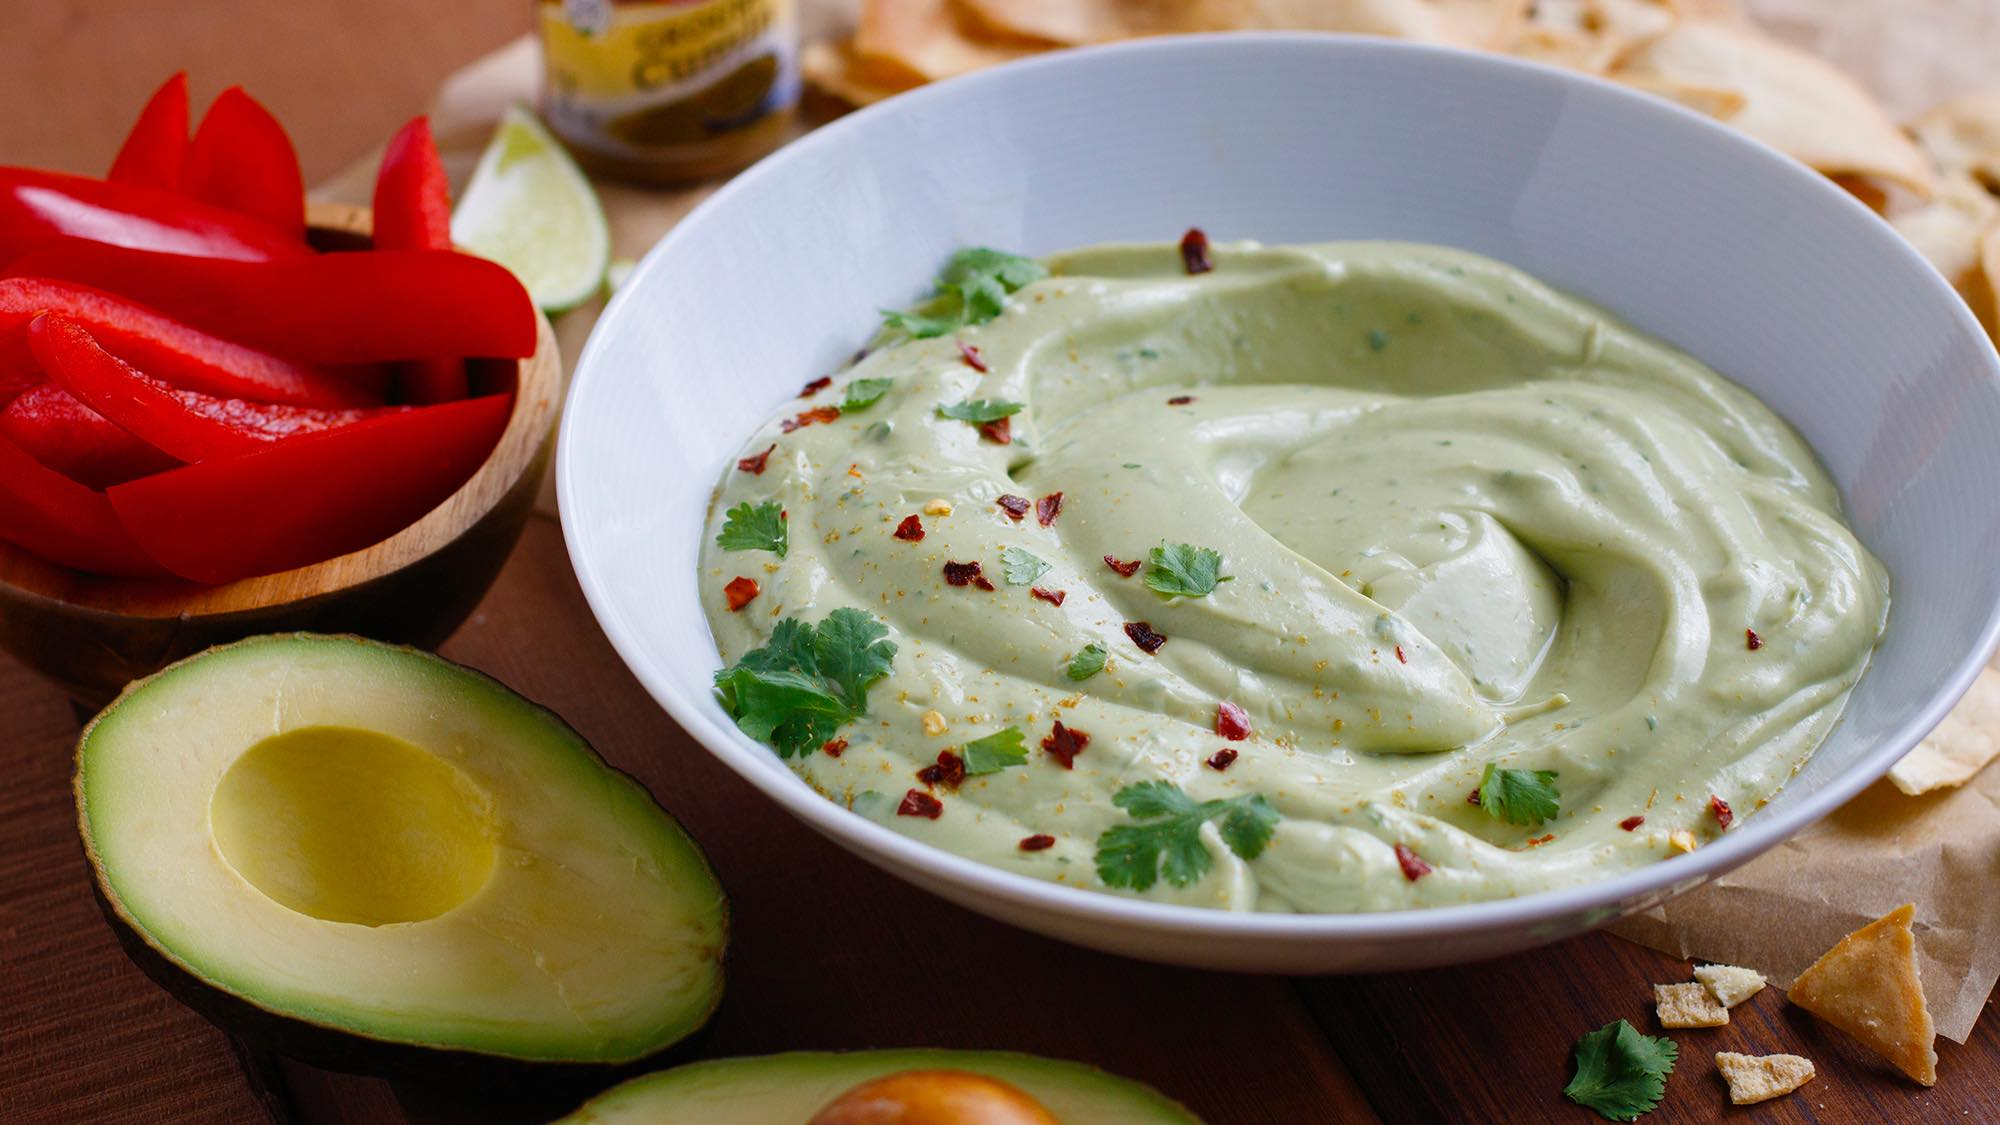 McCormick Avocado Yogurt Dip